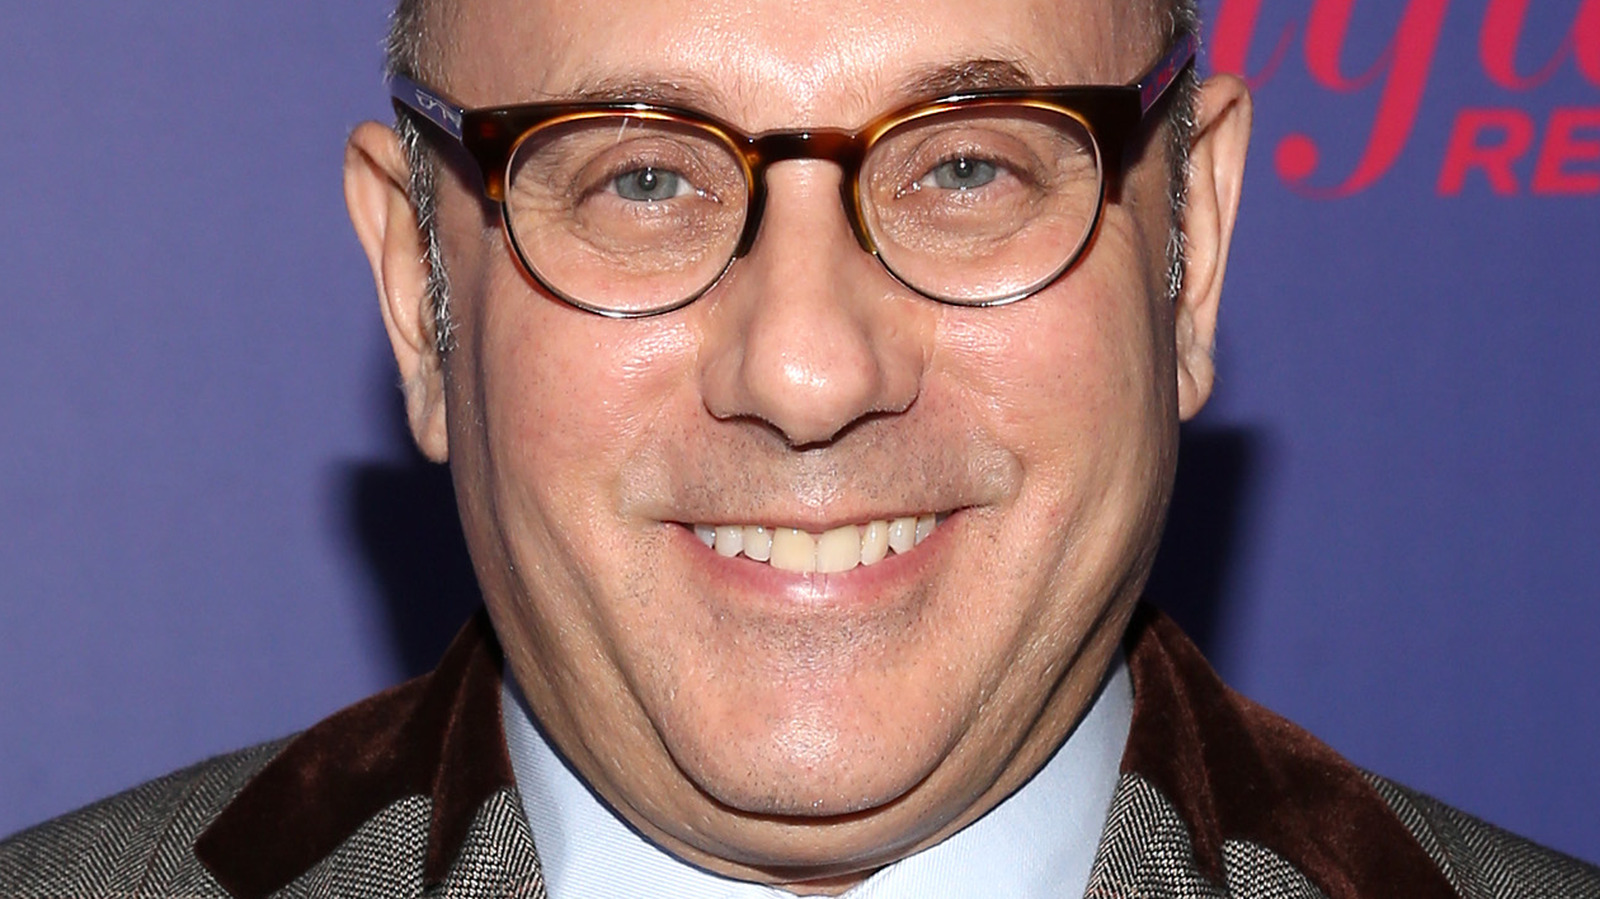 The Tragic Death Of Sex And The City Star Willie Garson